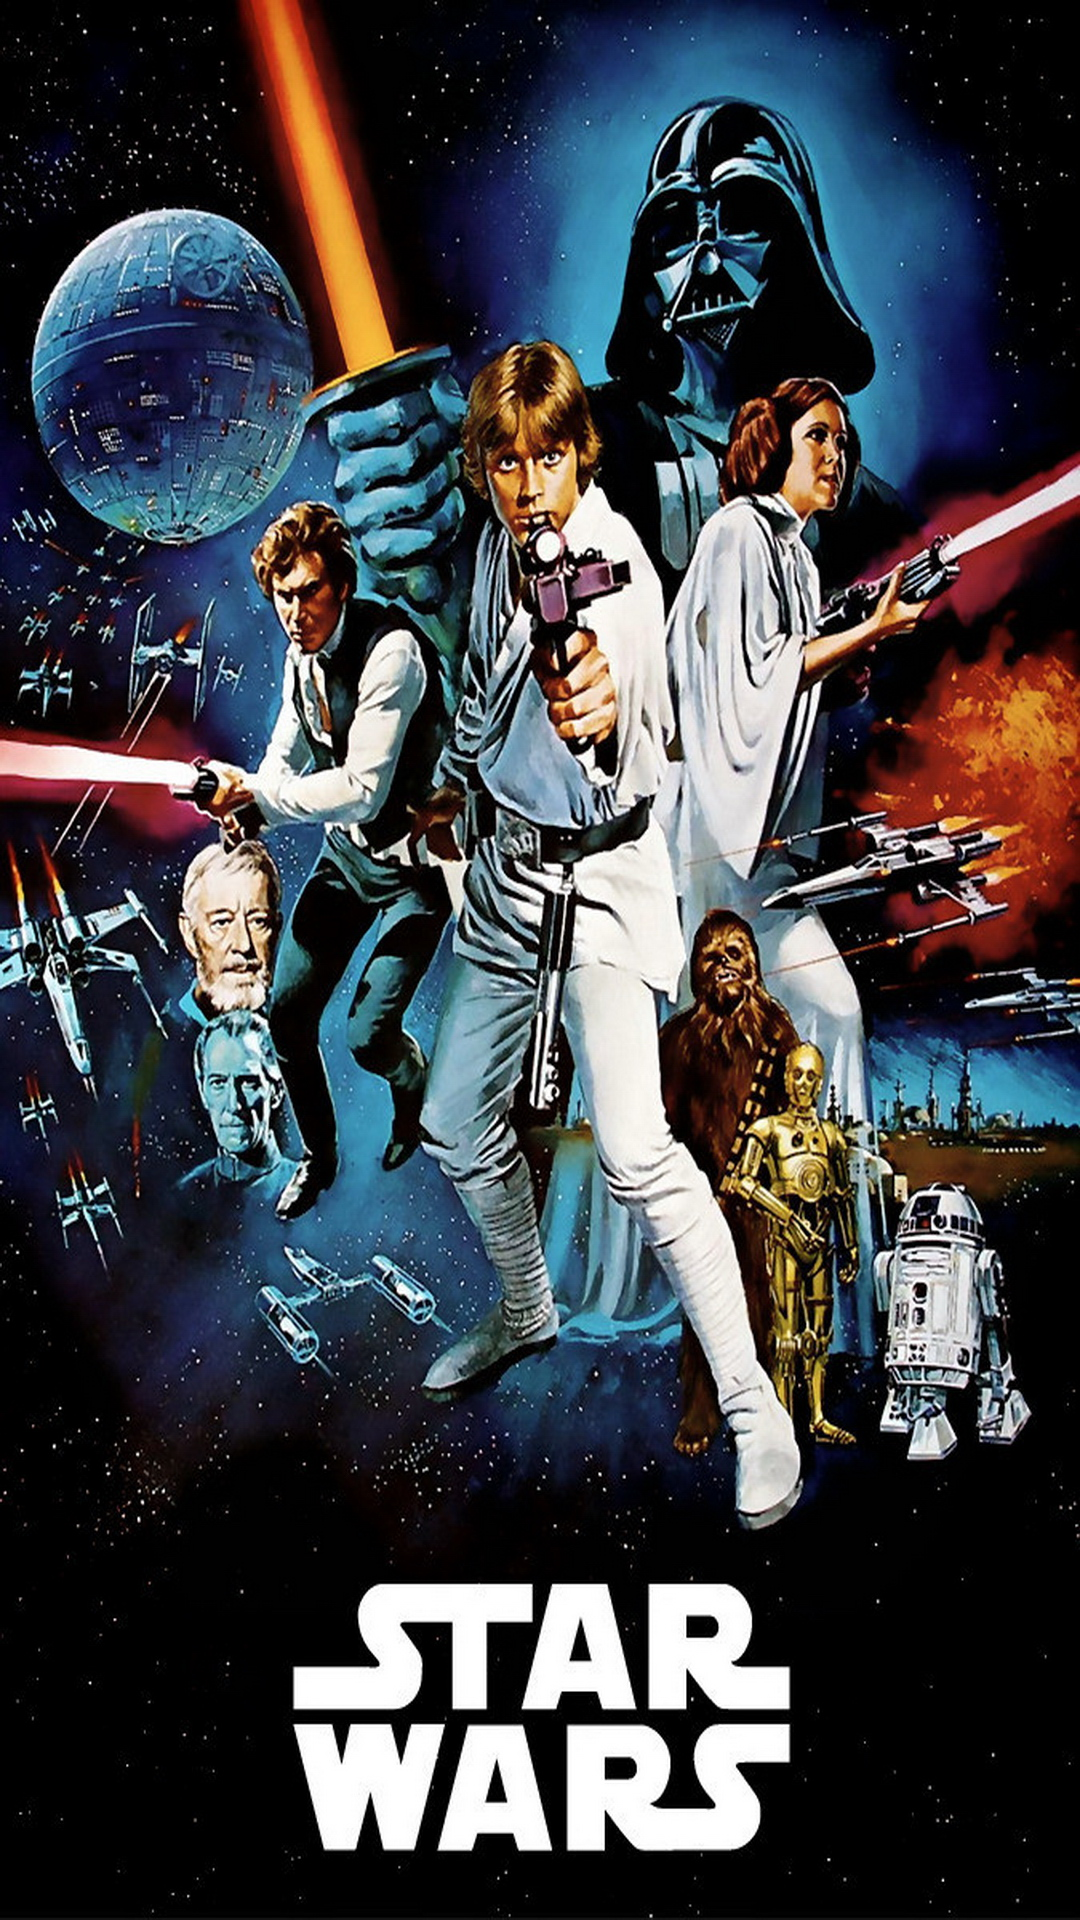 10 Movie Posters Wallpapers For The Iphone 6 Plus Han Star Wars Hd Poster 1080x1920 Wallpaper Teahub Io